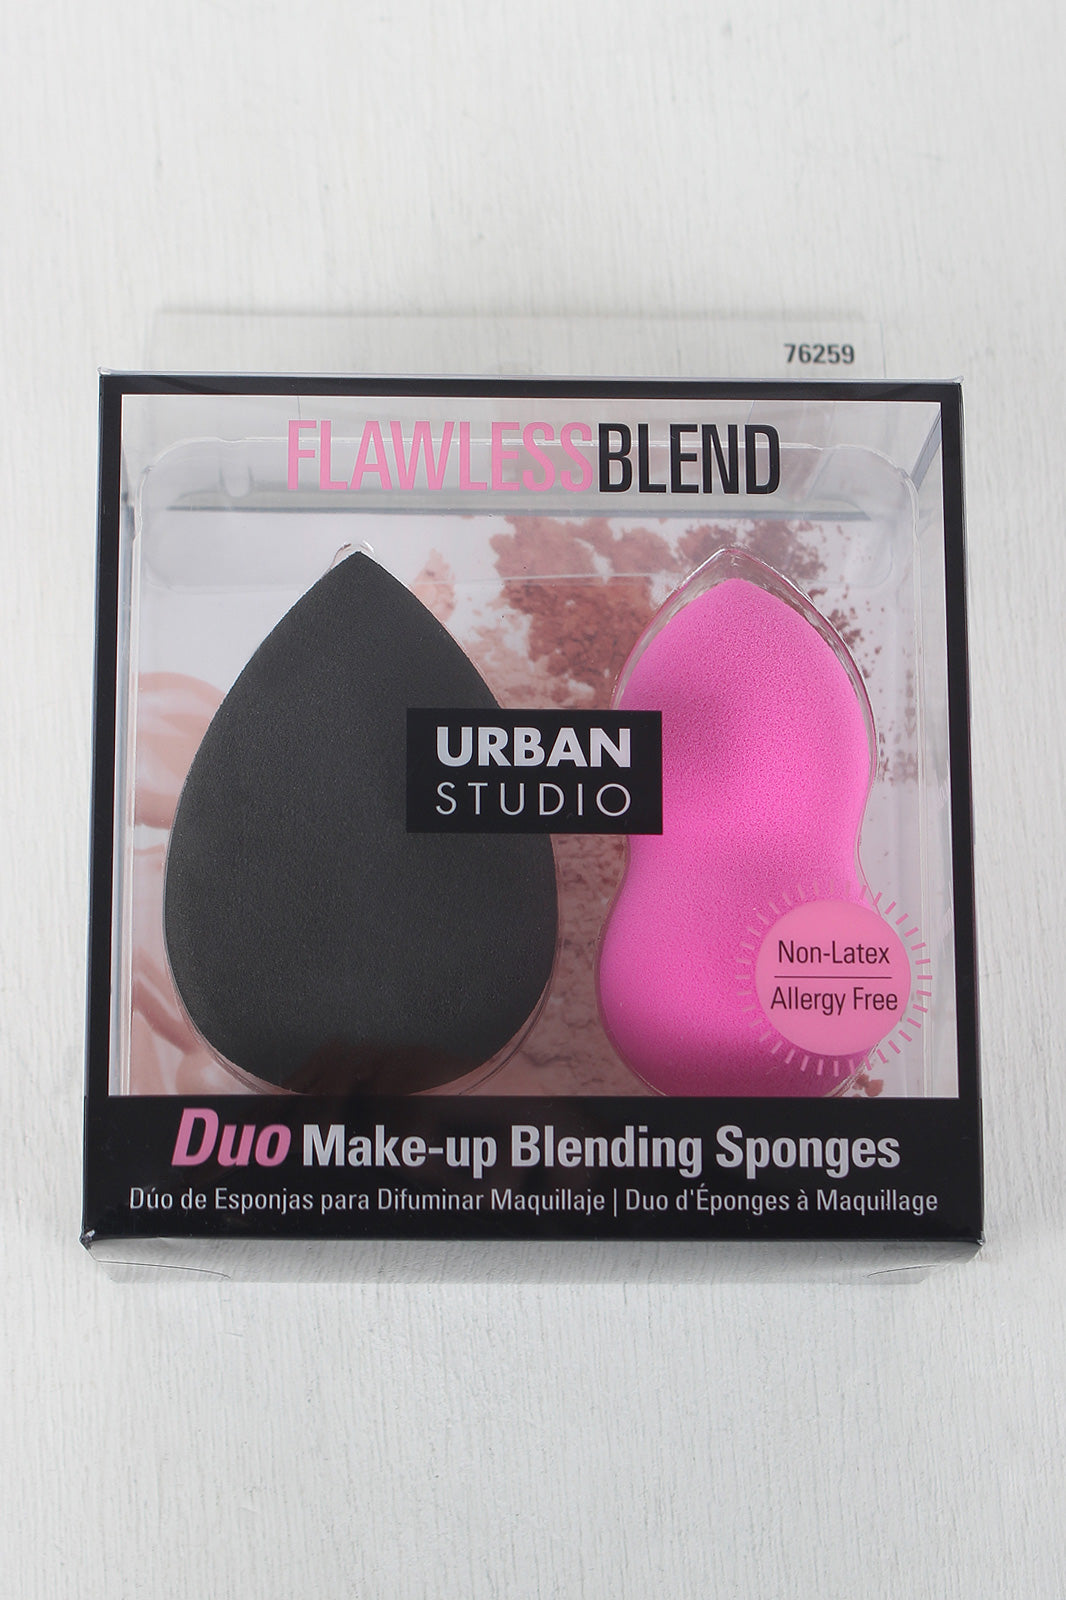 Flawless Blend Urban Studio Duo Make-up Sponges